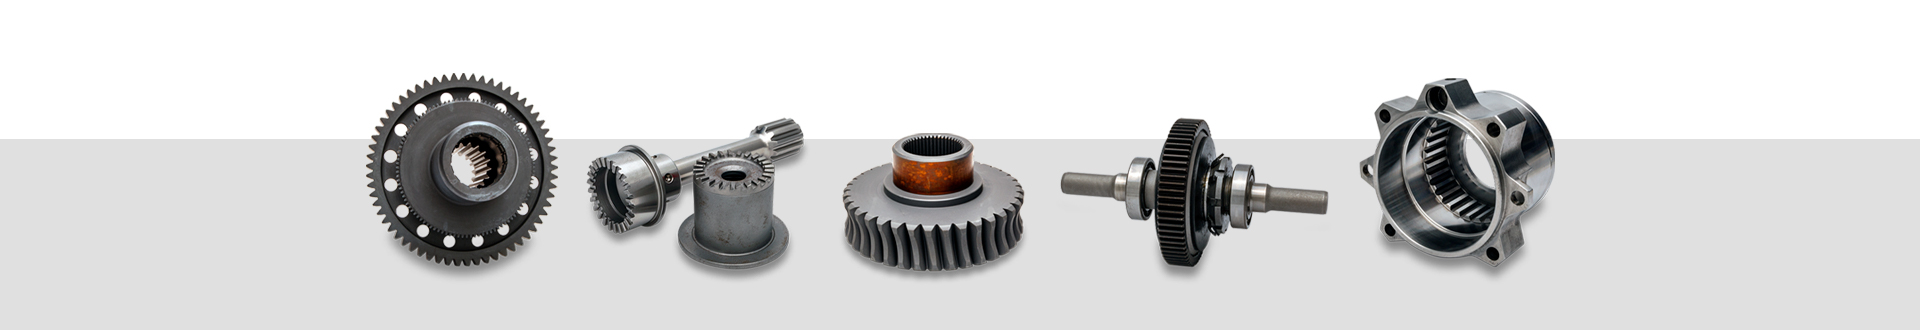 precision machined parts with gears